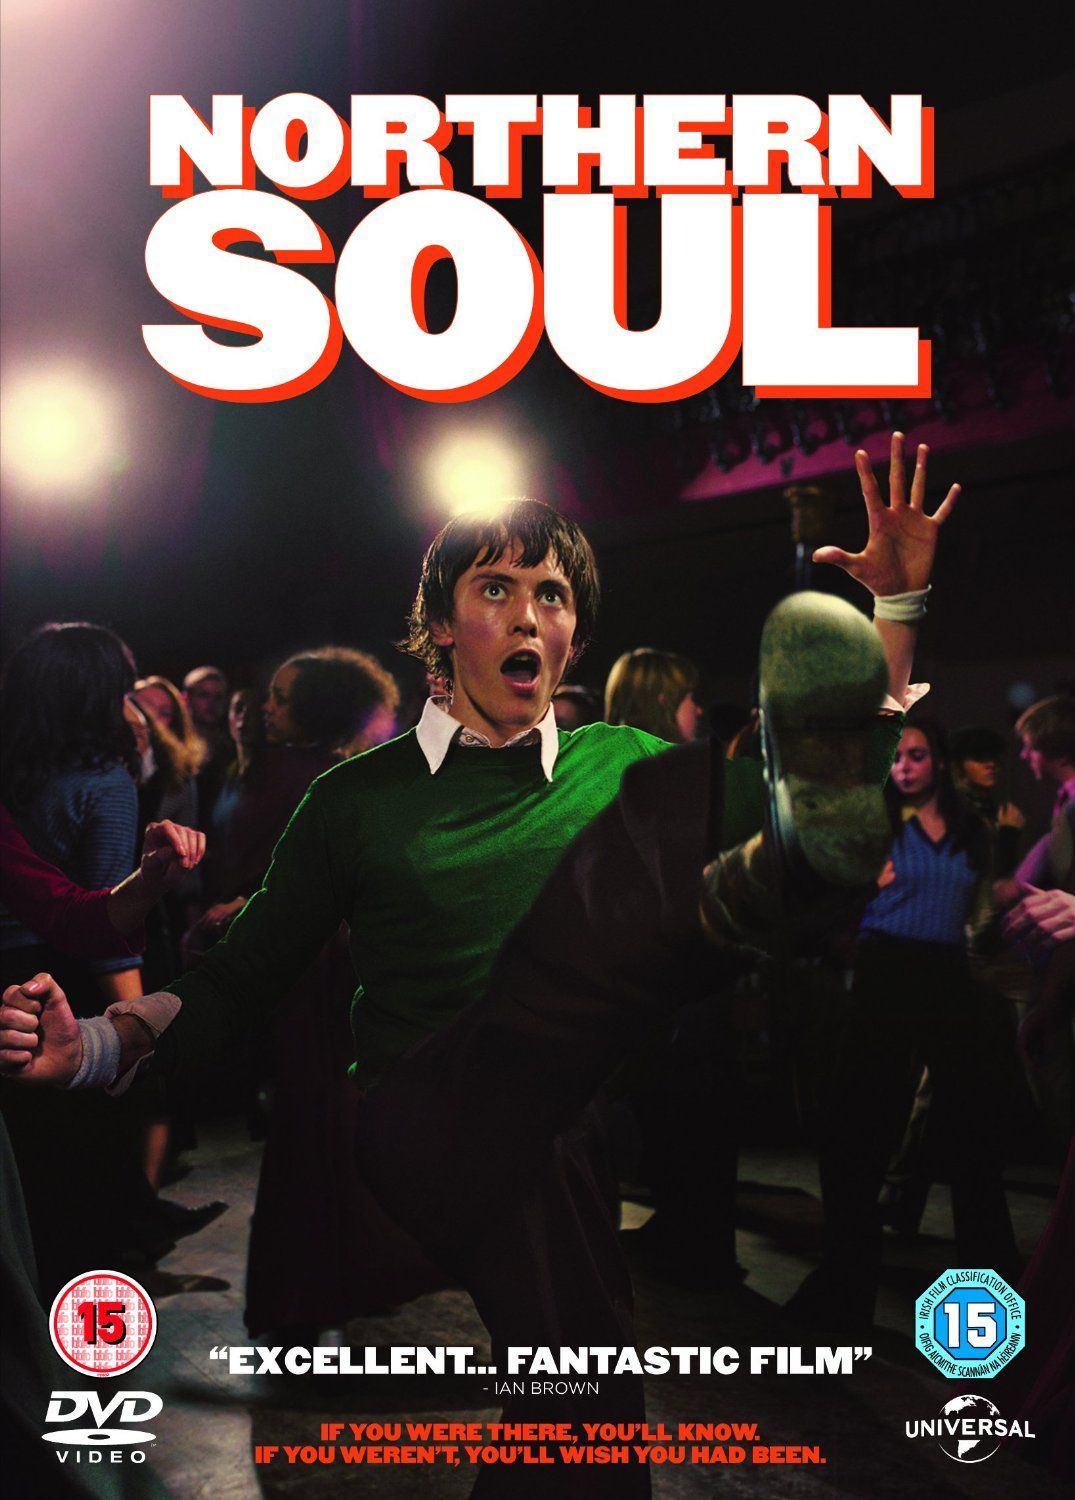 Northern Soul [DVD] [2014]: Amazon.co.uk: Steve Coogan, Antonia Thomas, Christian McKay, Elliot James Langridge, Josh Whitehouse, Elaine Constantine: DVD & Blu-ray